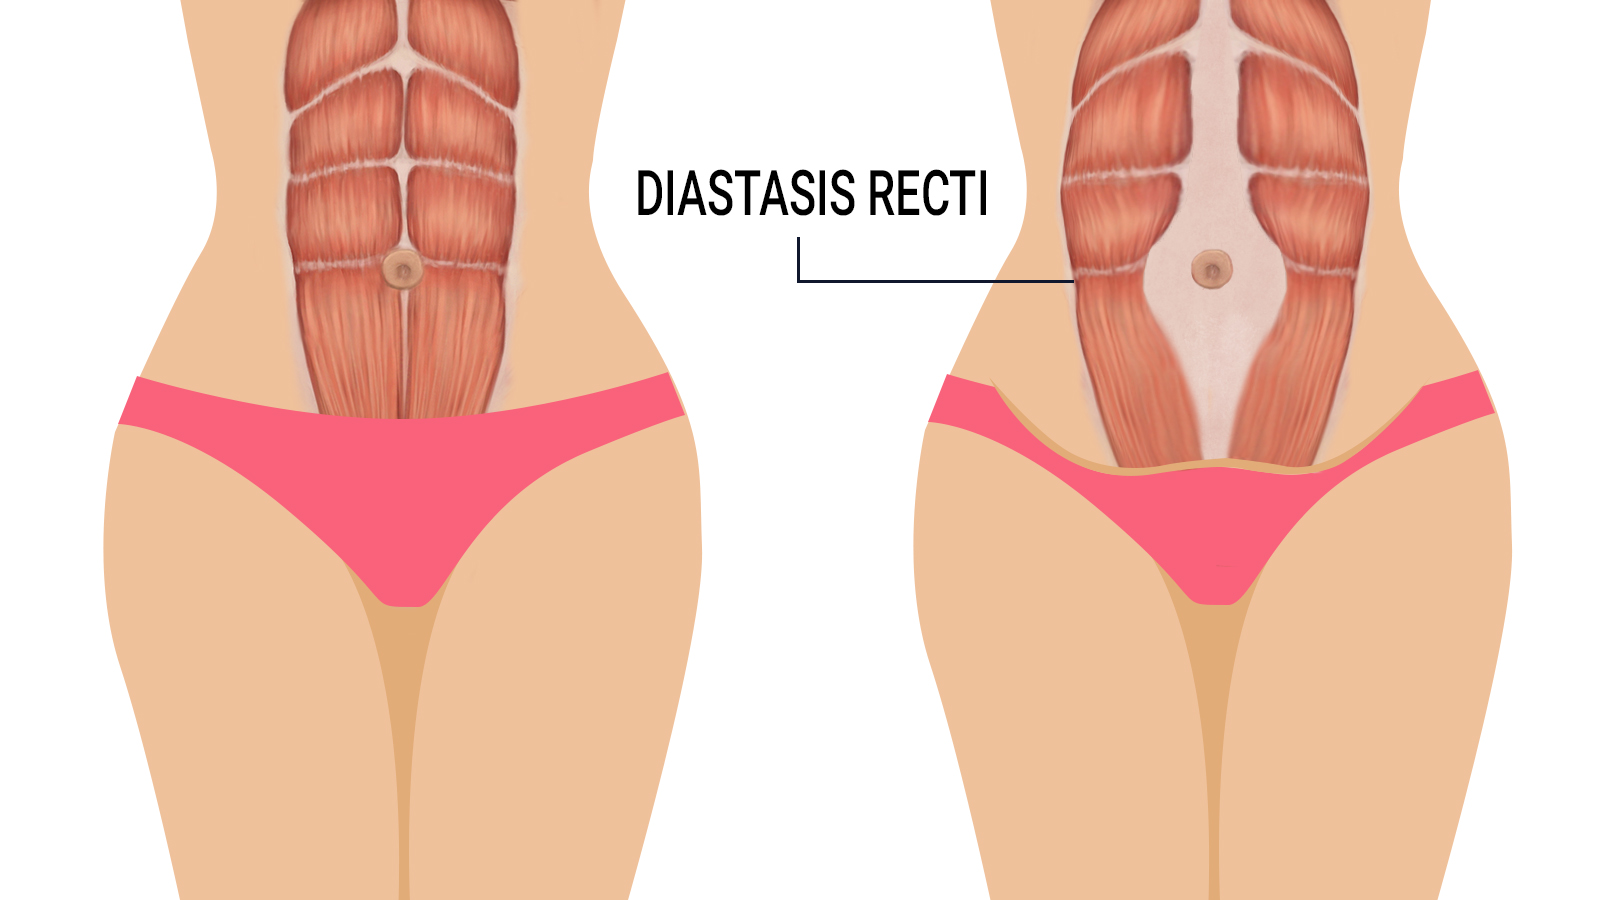 emsculpt-works-on-diastasis-recti